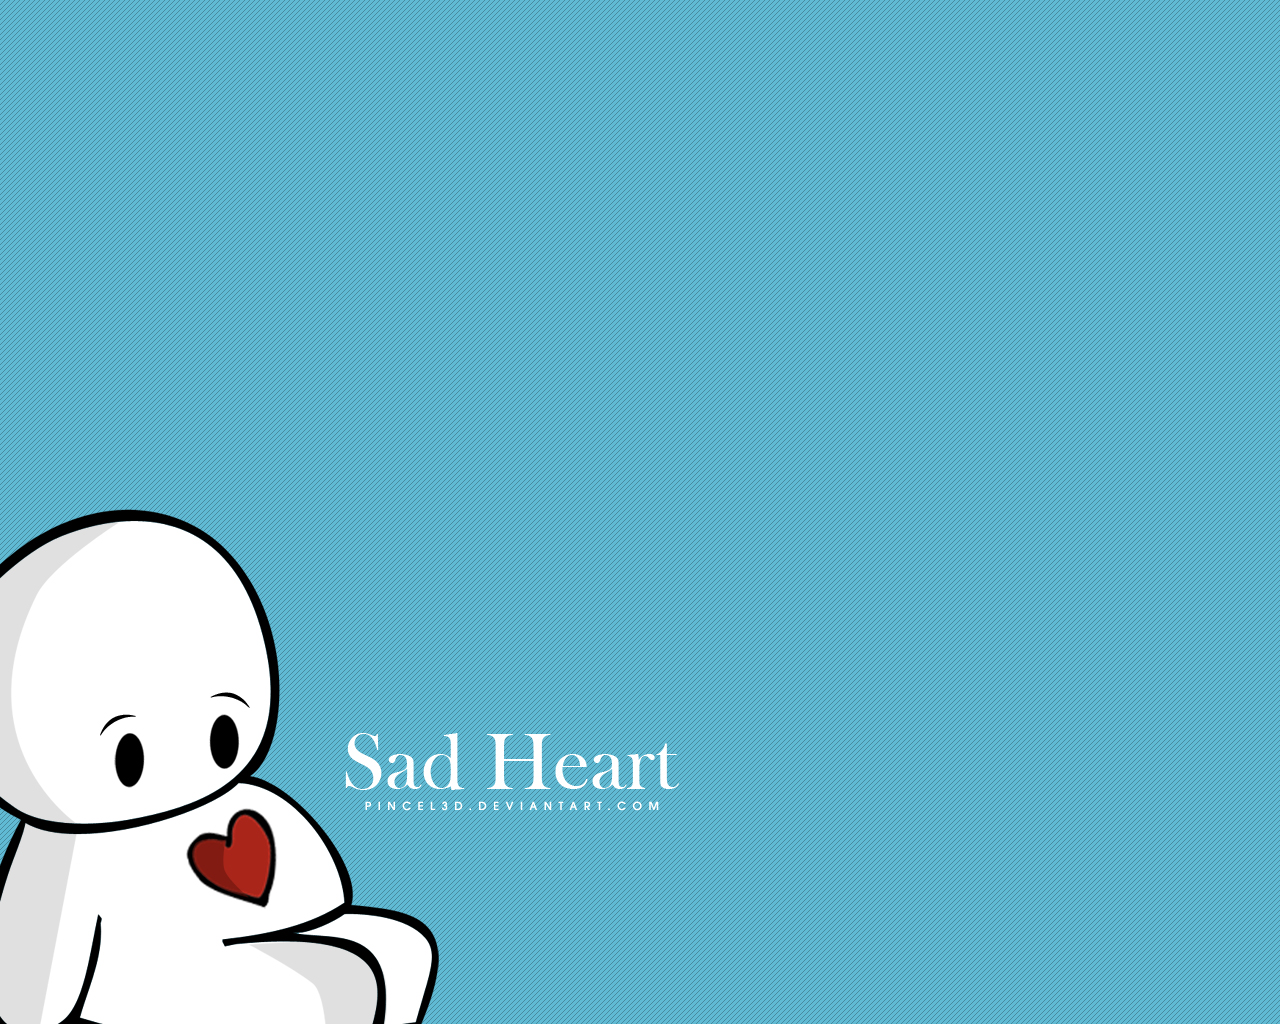 HD Wallpapers Desktop Wallpapers 1080p Sad Wallpaper 1280x1024